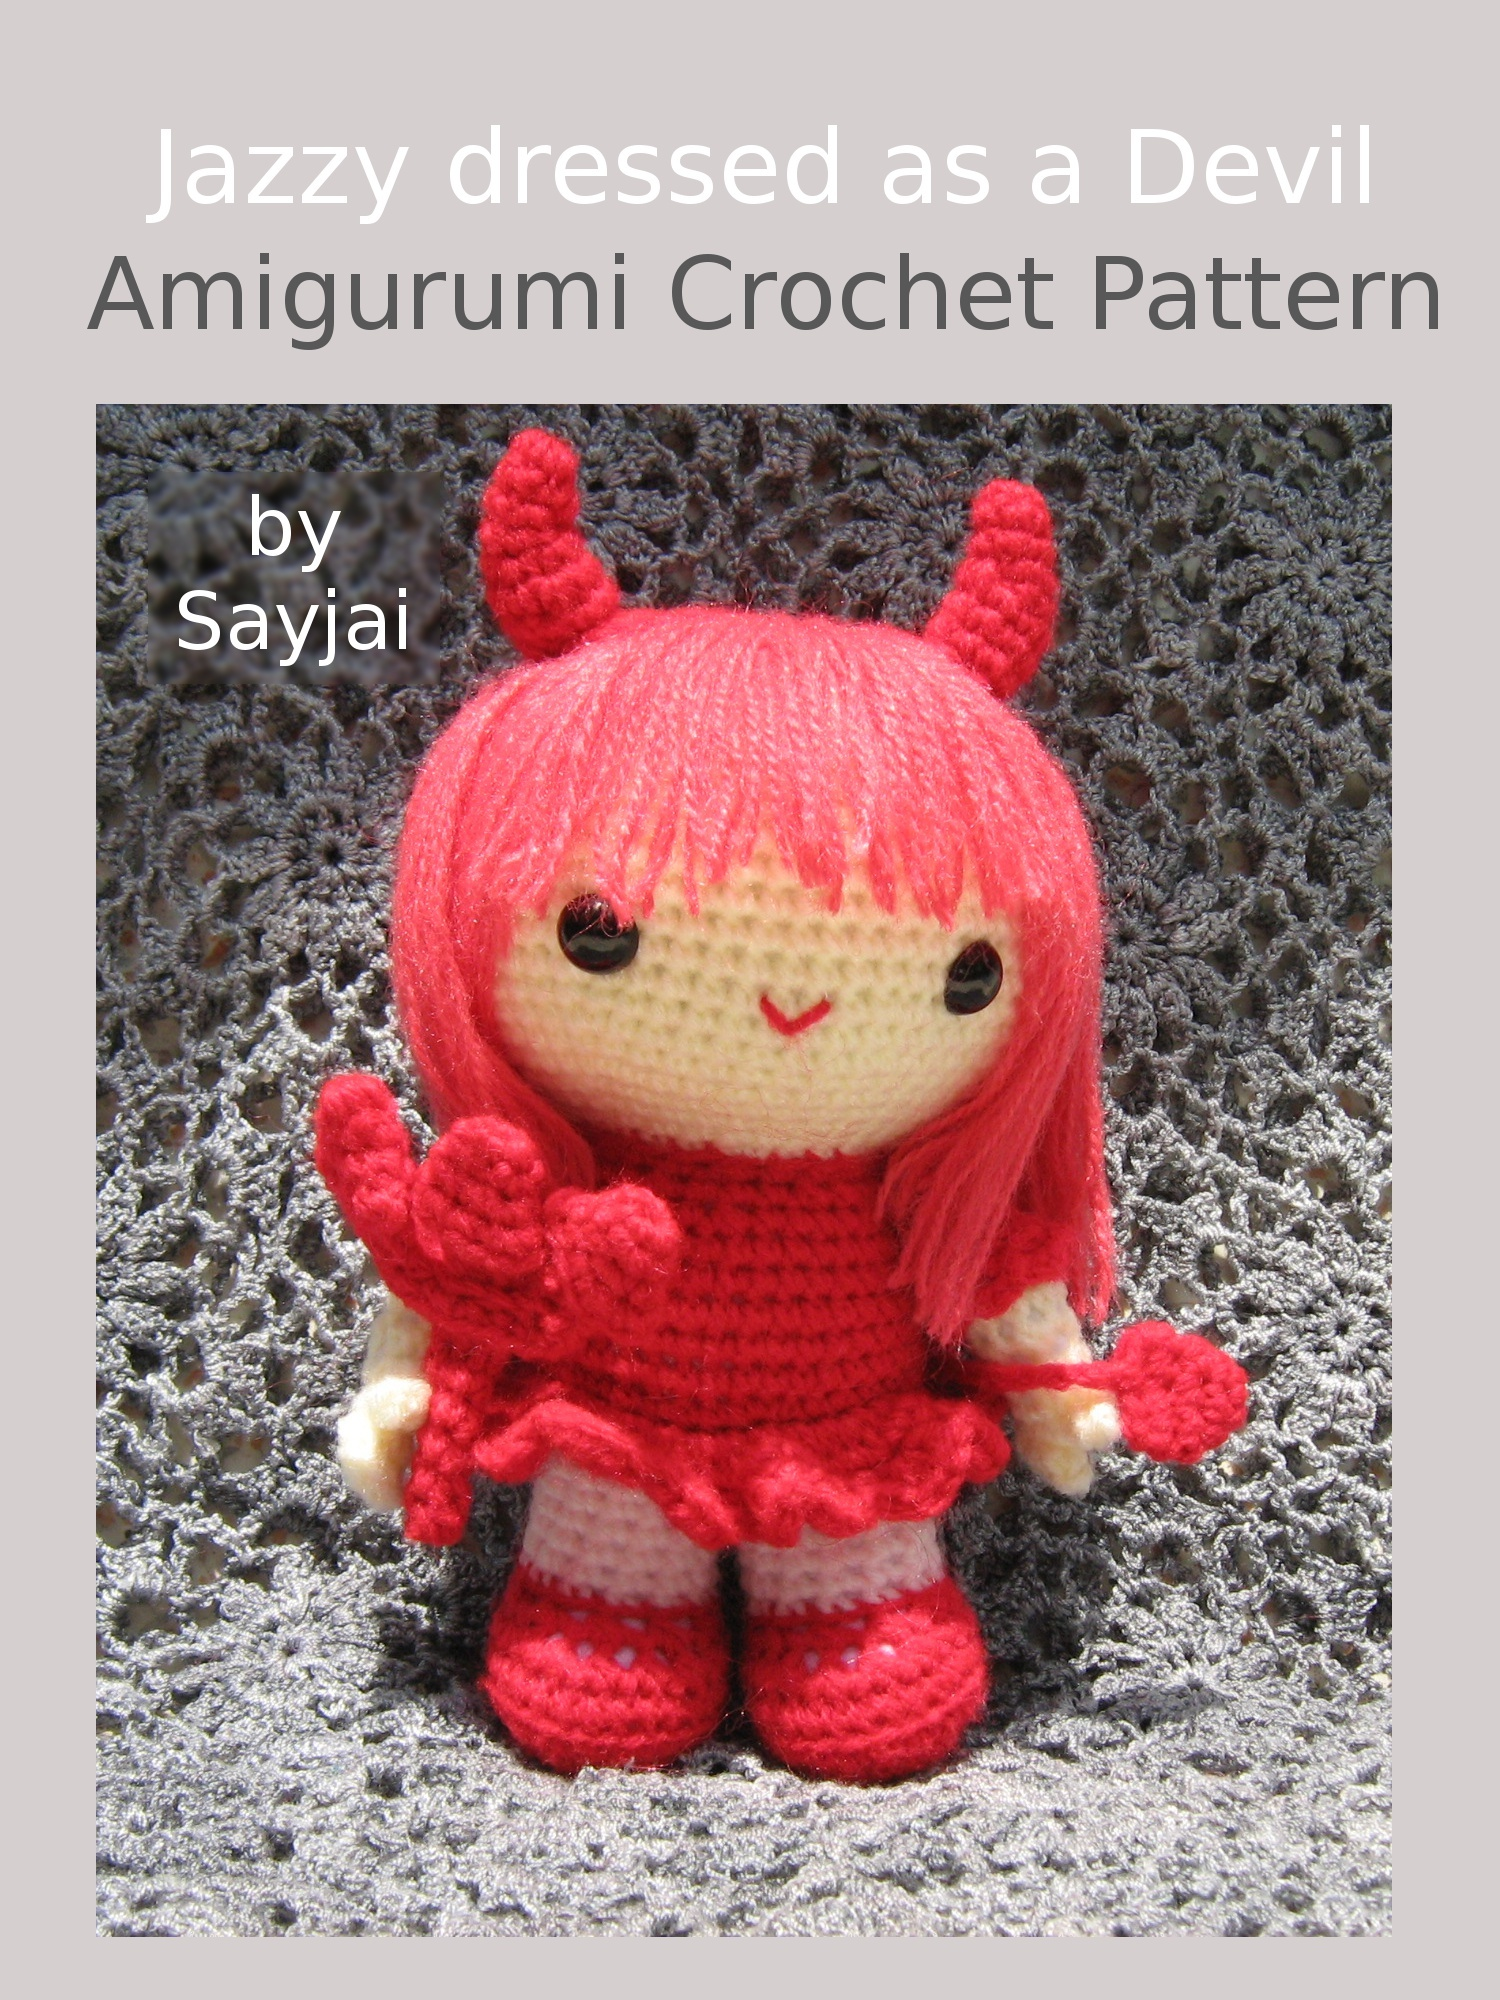 Jazzy dressed as a Devil Amigurumi Crochet Pattern